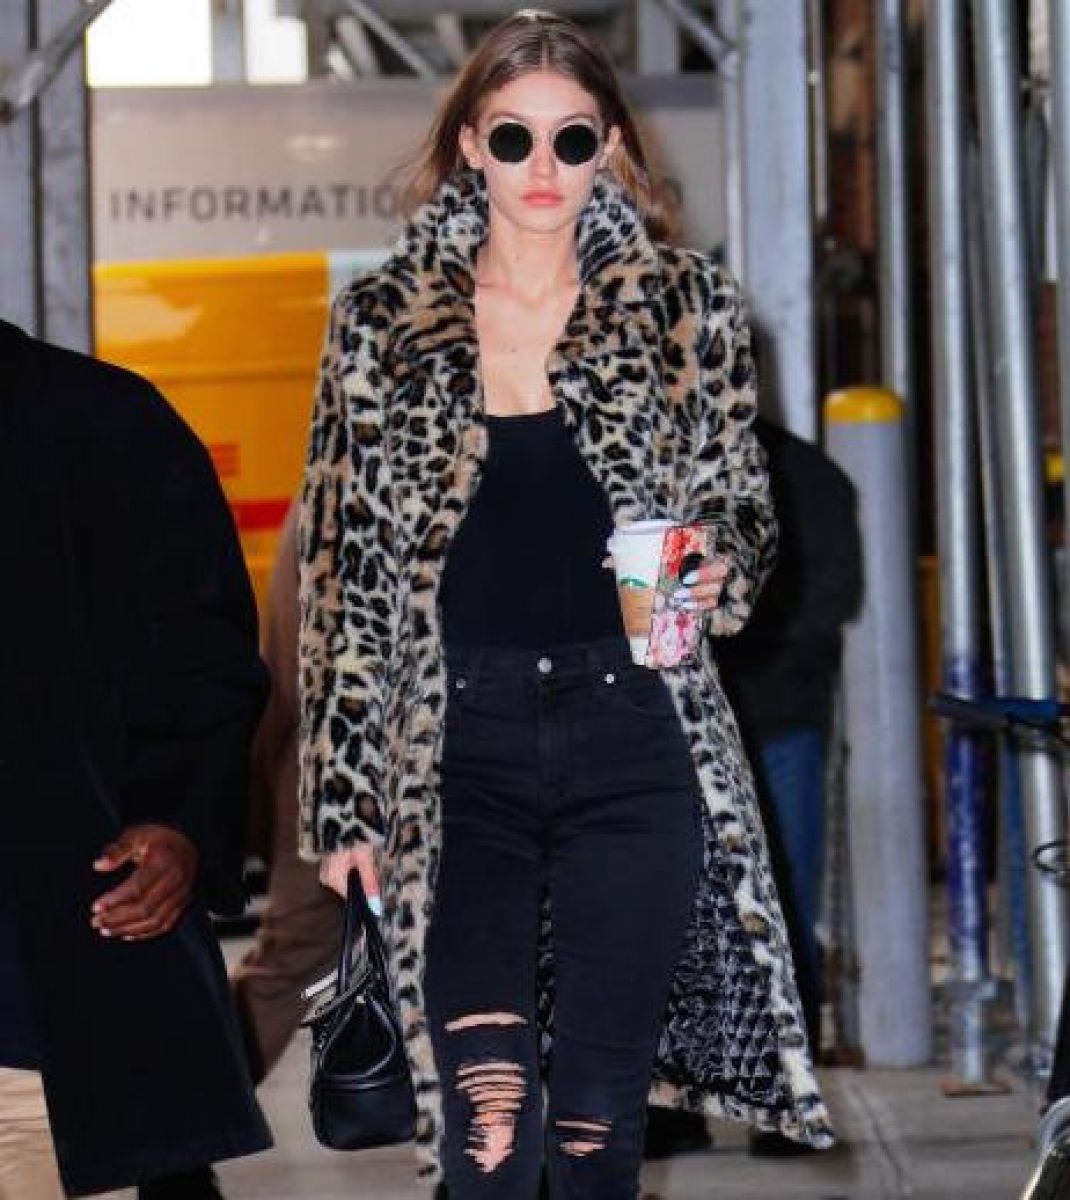 Gigi Hadid wearing Oliver Peoples The Row sunglasses, Majorelle Faux Fur  Coat, Current/